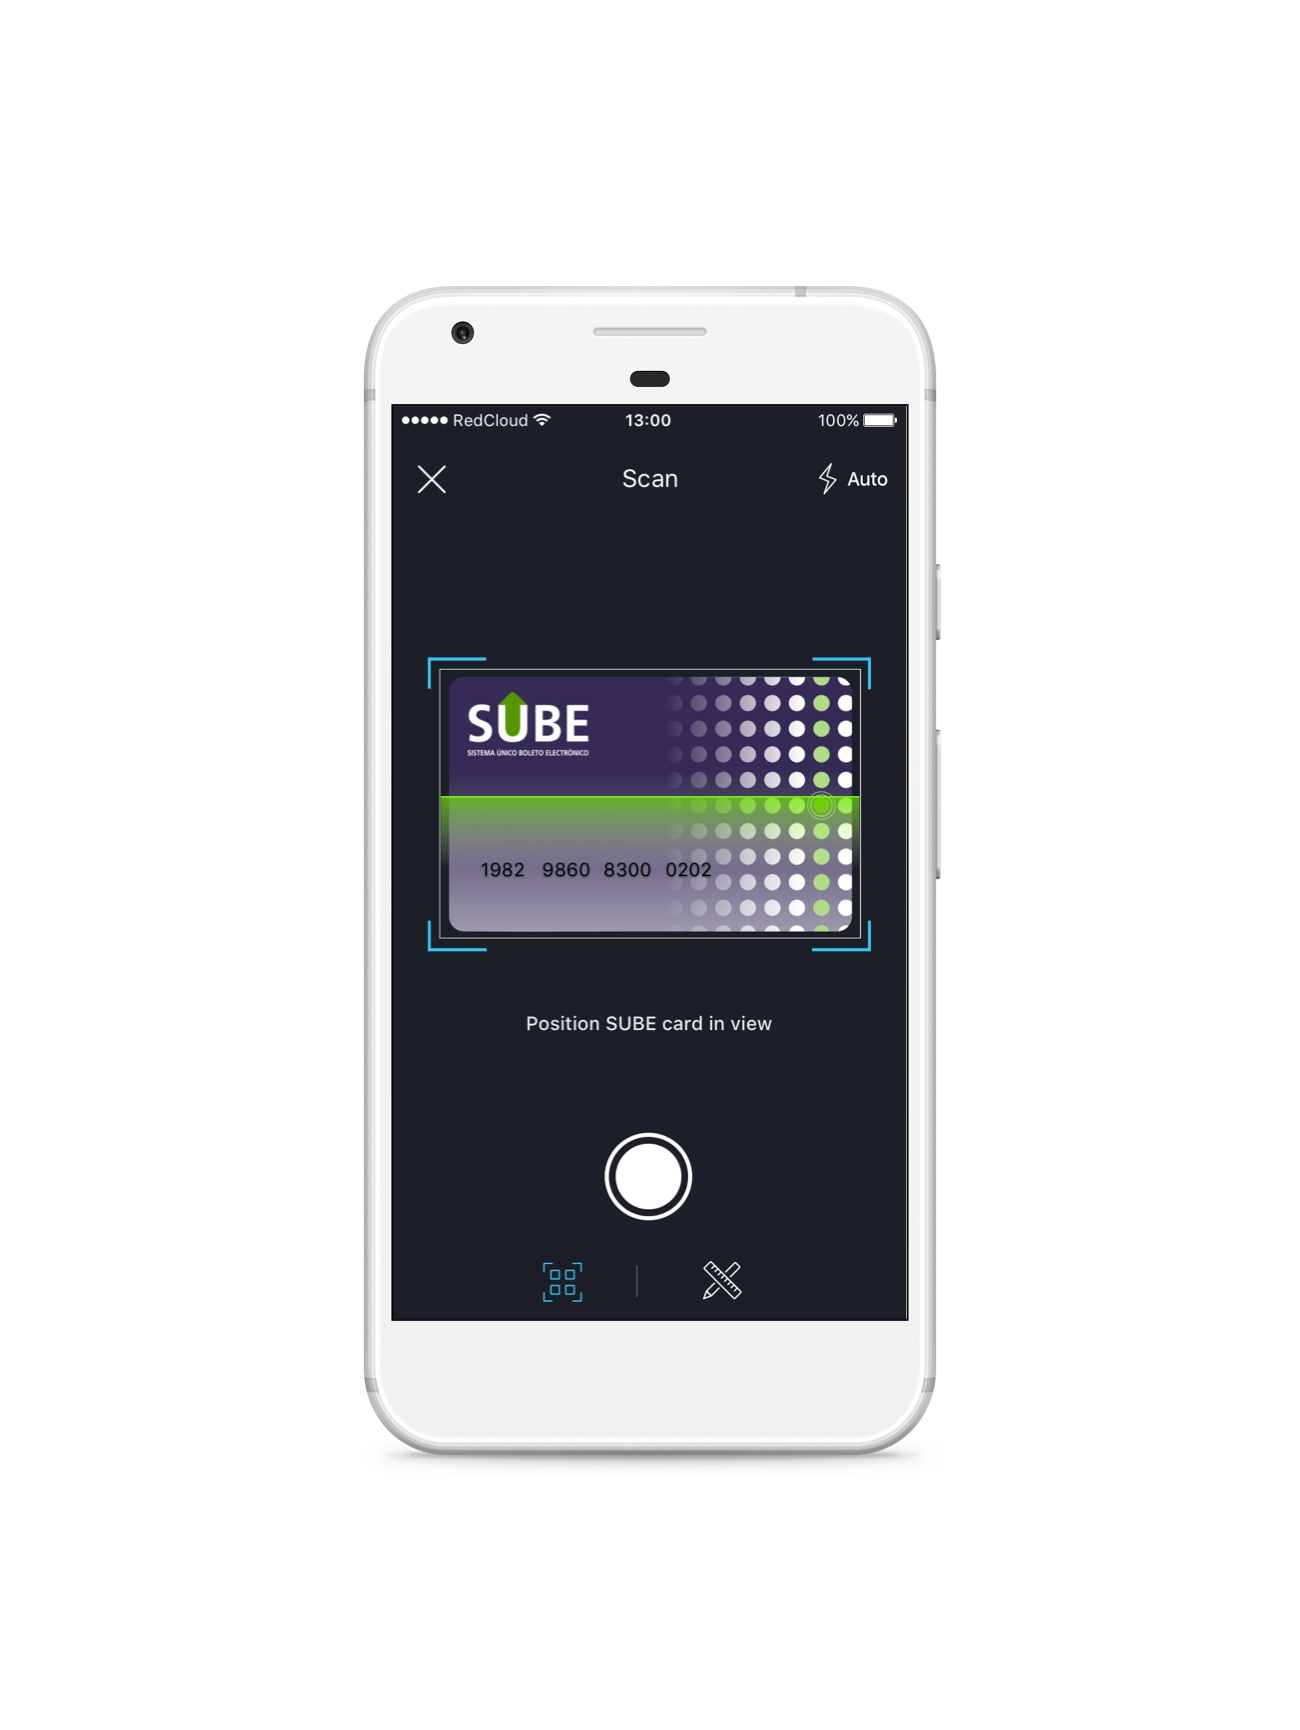 Scan your Sube - RedCloud's easy to use platform allows any retailer to become an 'e tailer' by processing Sube card prepayments for 16M commuters from their stores